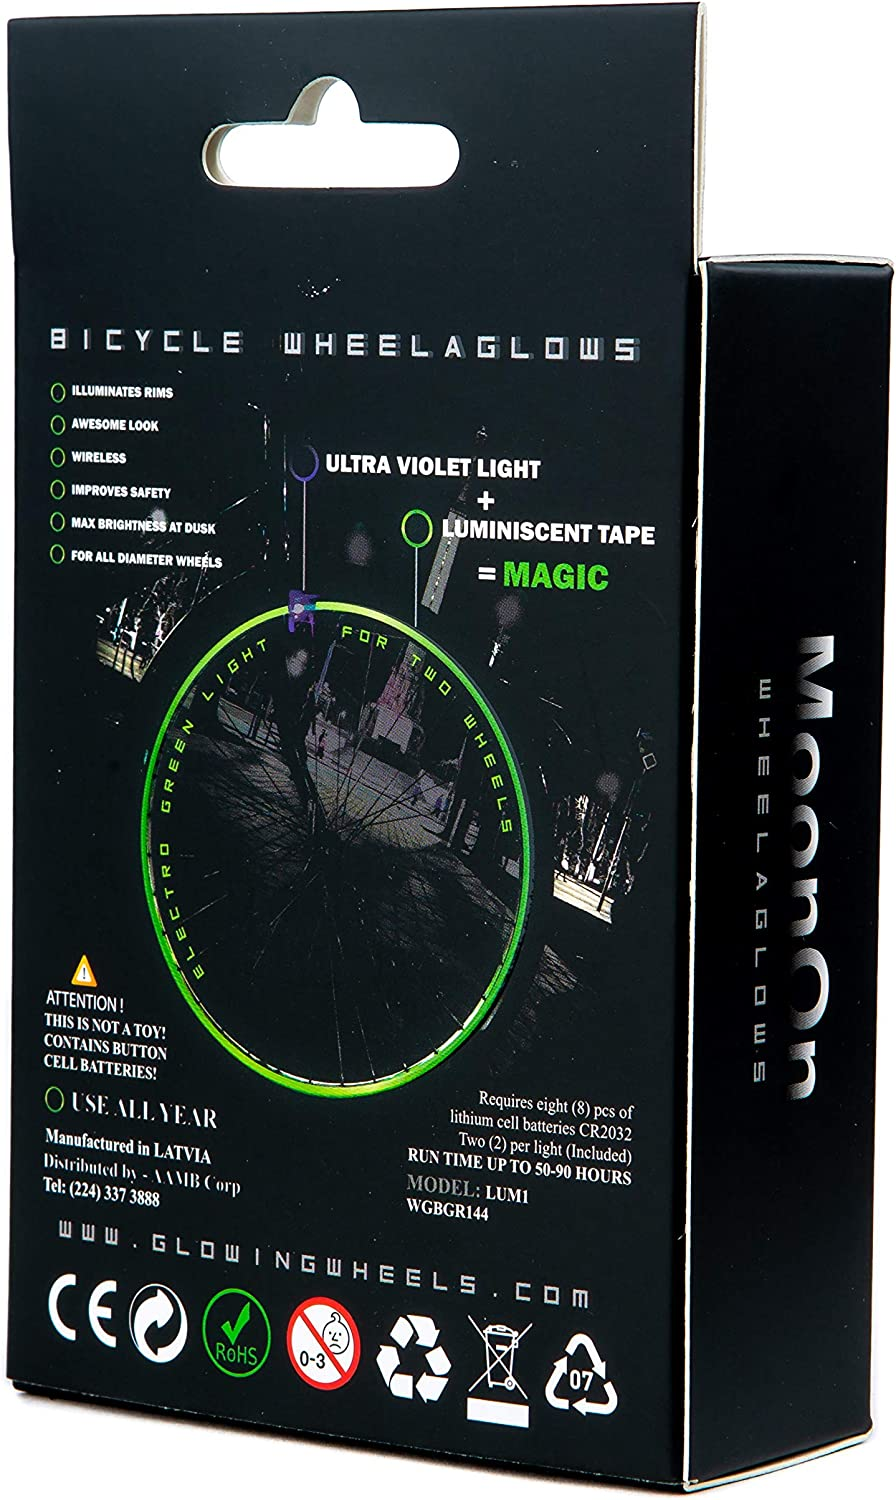 LED Lights MoonOn Wheelaglows Bicycle Wireless Light System Kit Rim//Wheel Glow in The Dark Electro Green Luminescent Glowing Tape Activated by UV